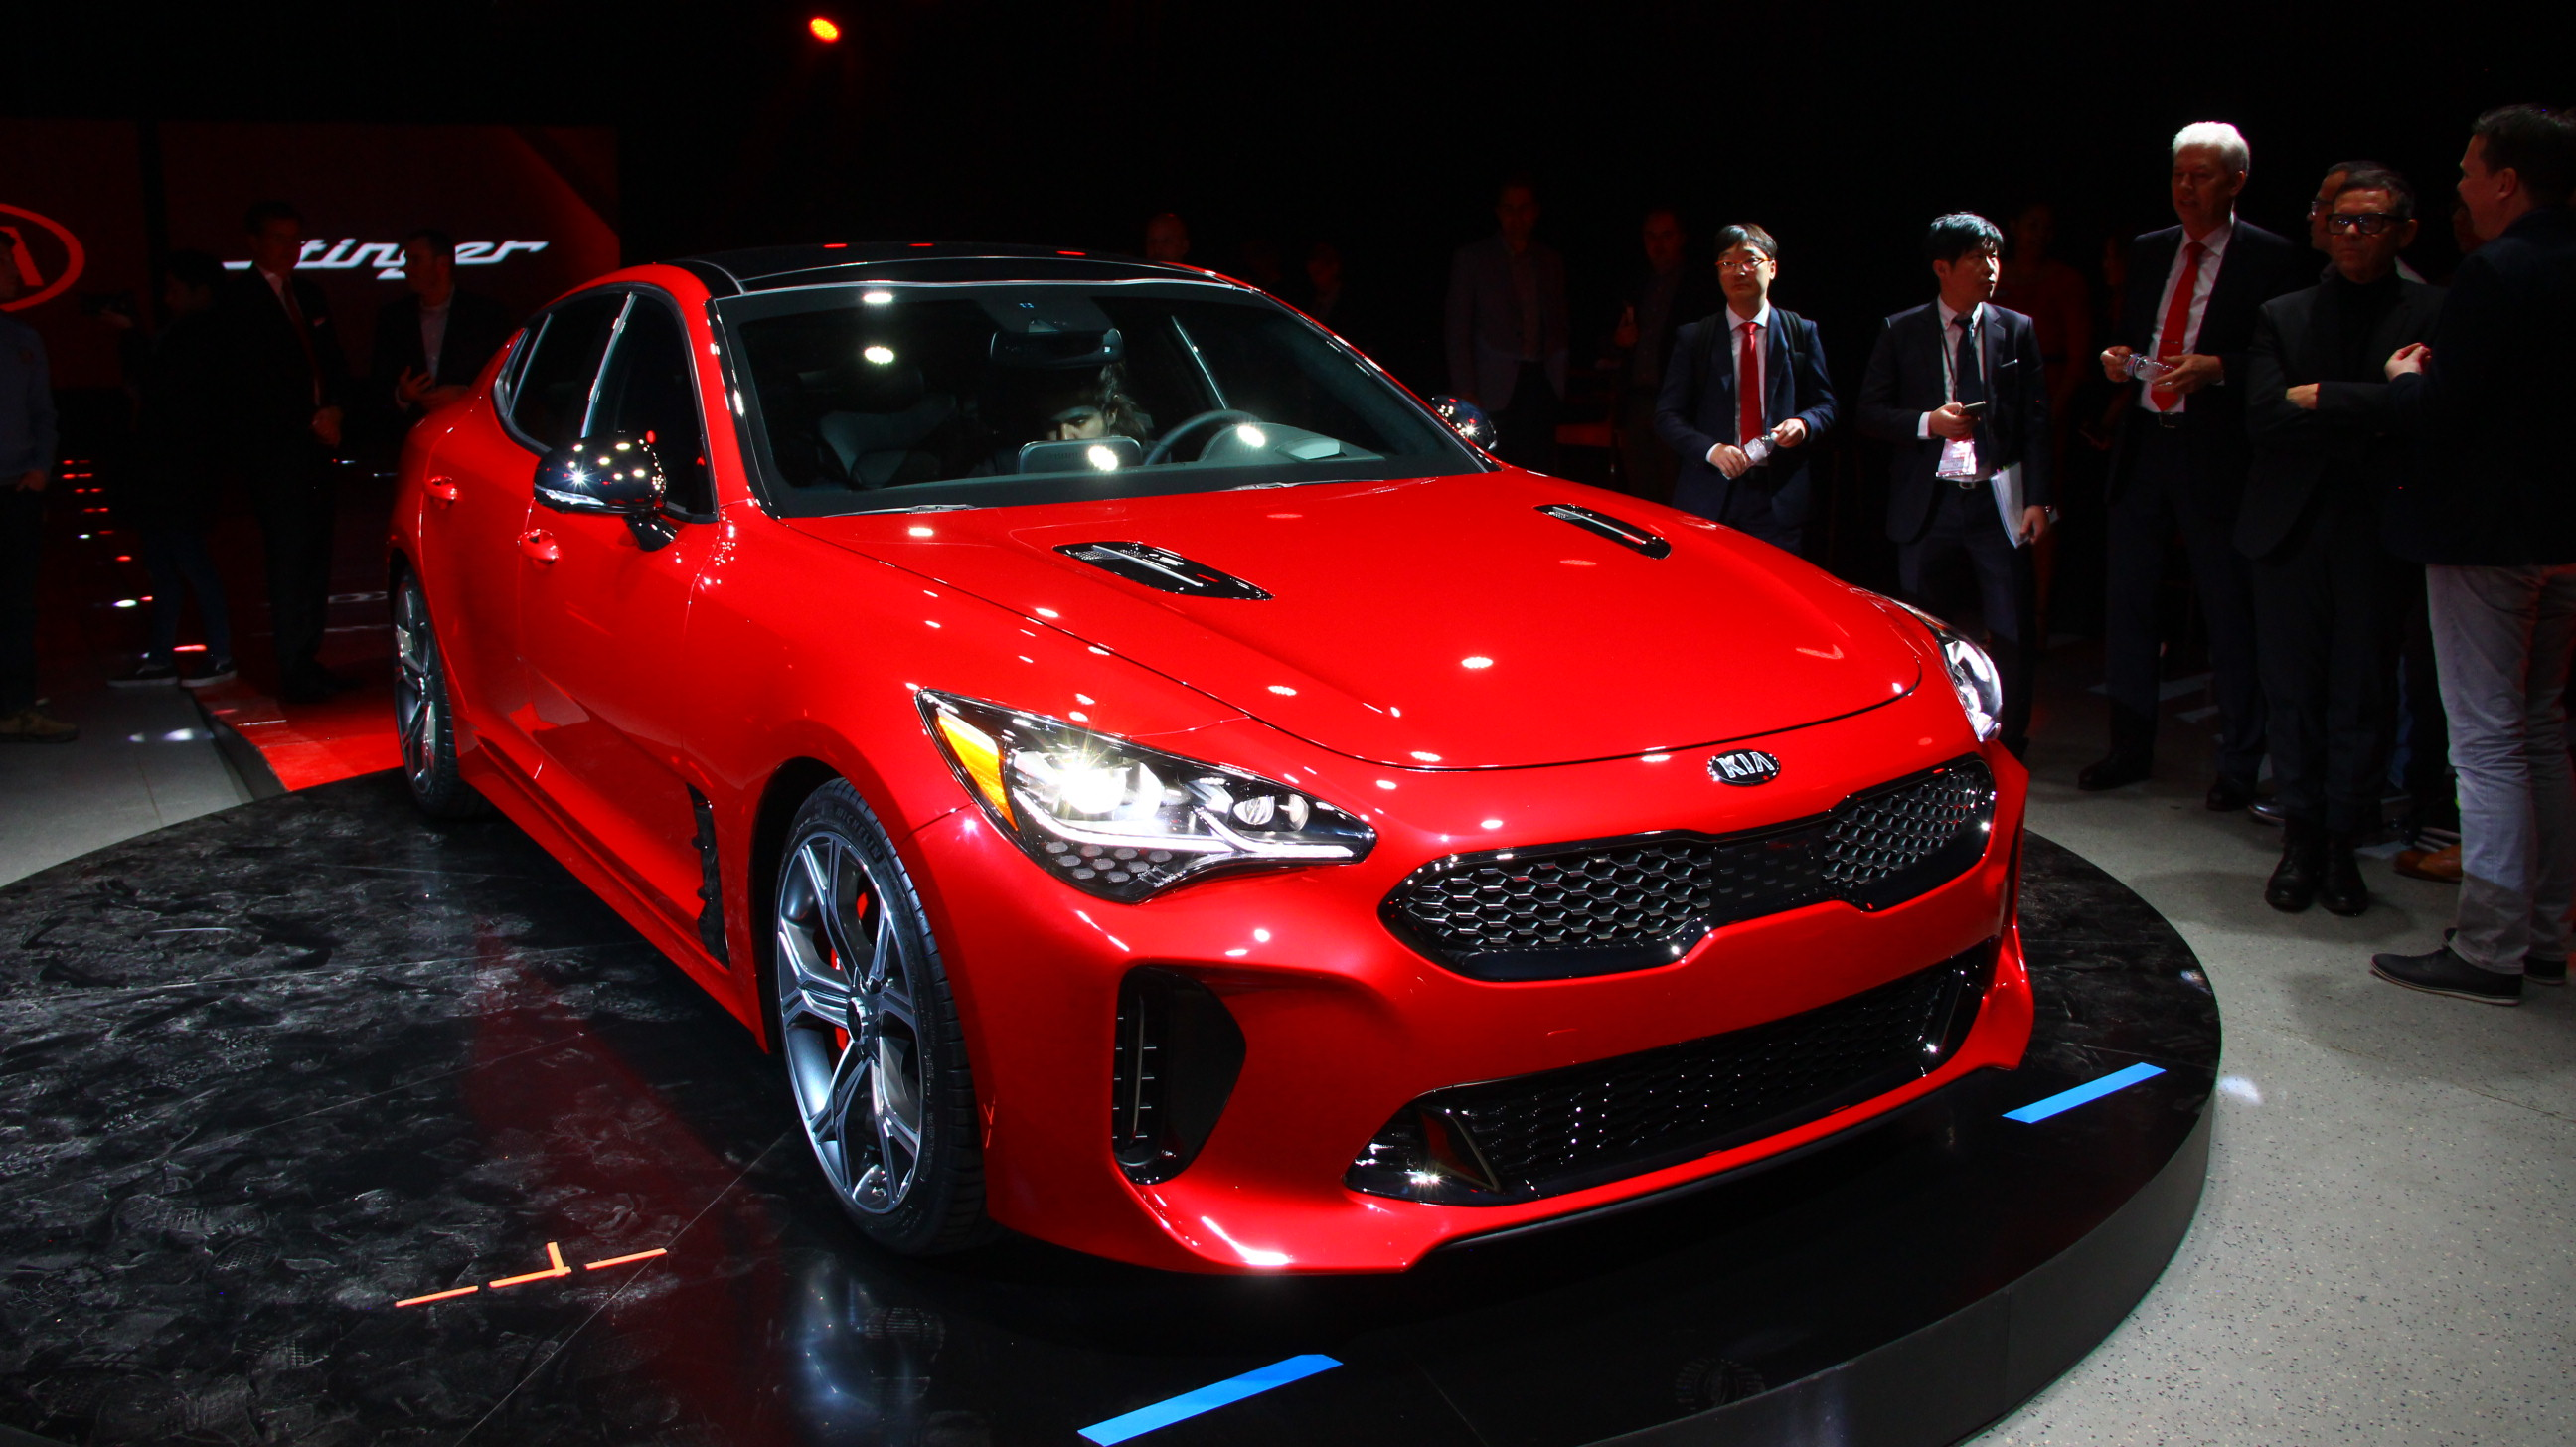 2018 kia stinger debuts as rwd sports sedan shaped middle finger to german rivals autoguide. Black Bedroom Furniture Sets. Home Design Ideas